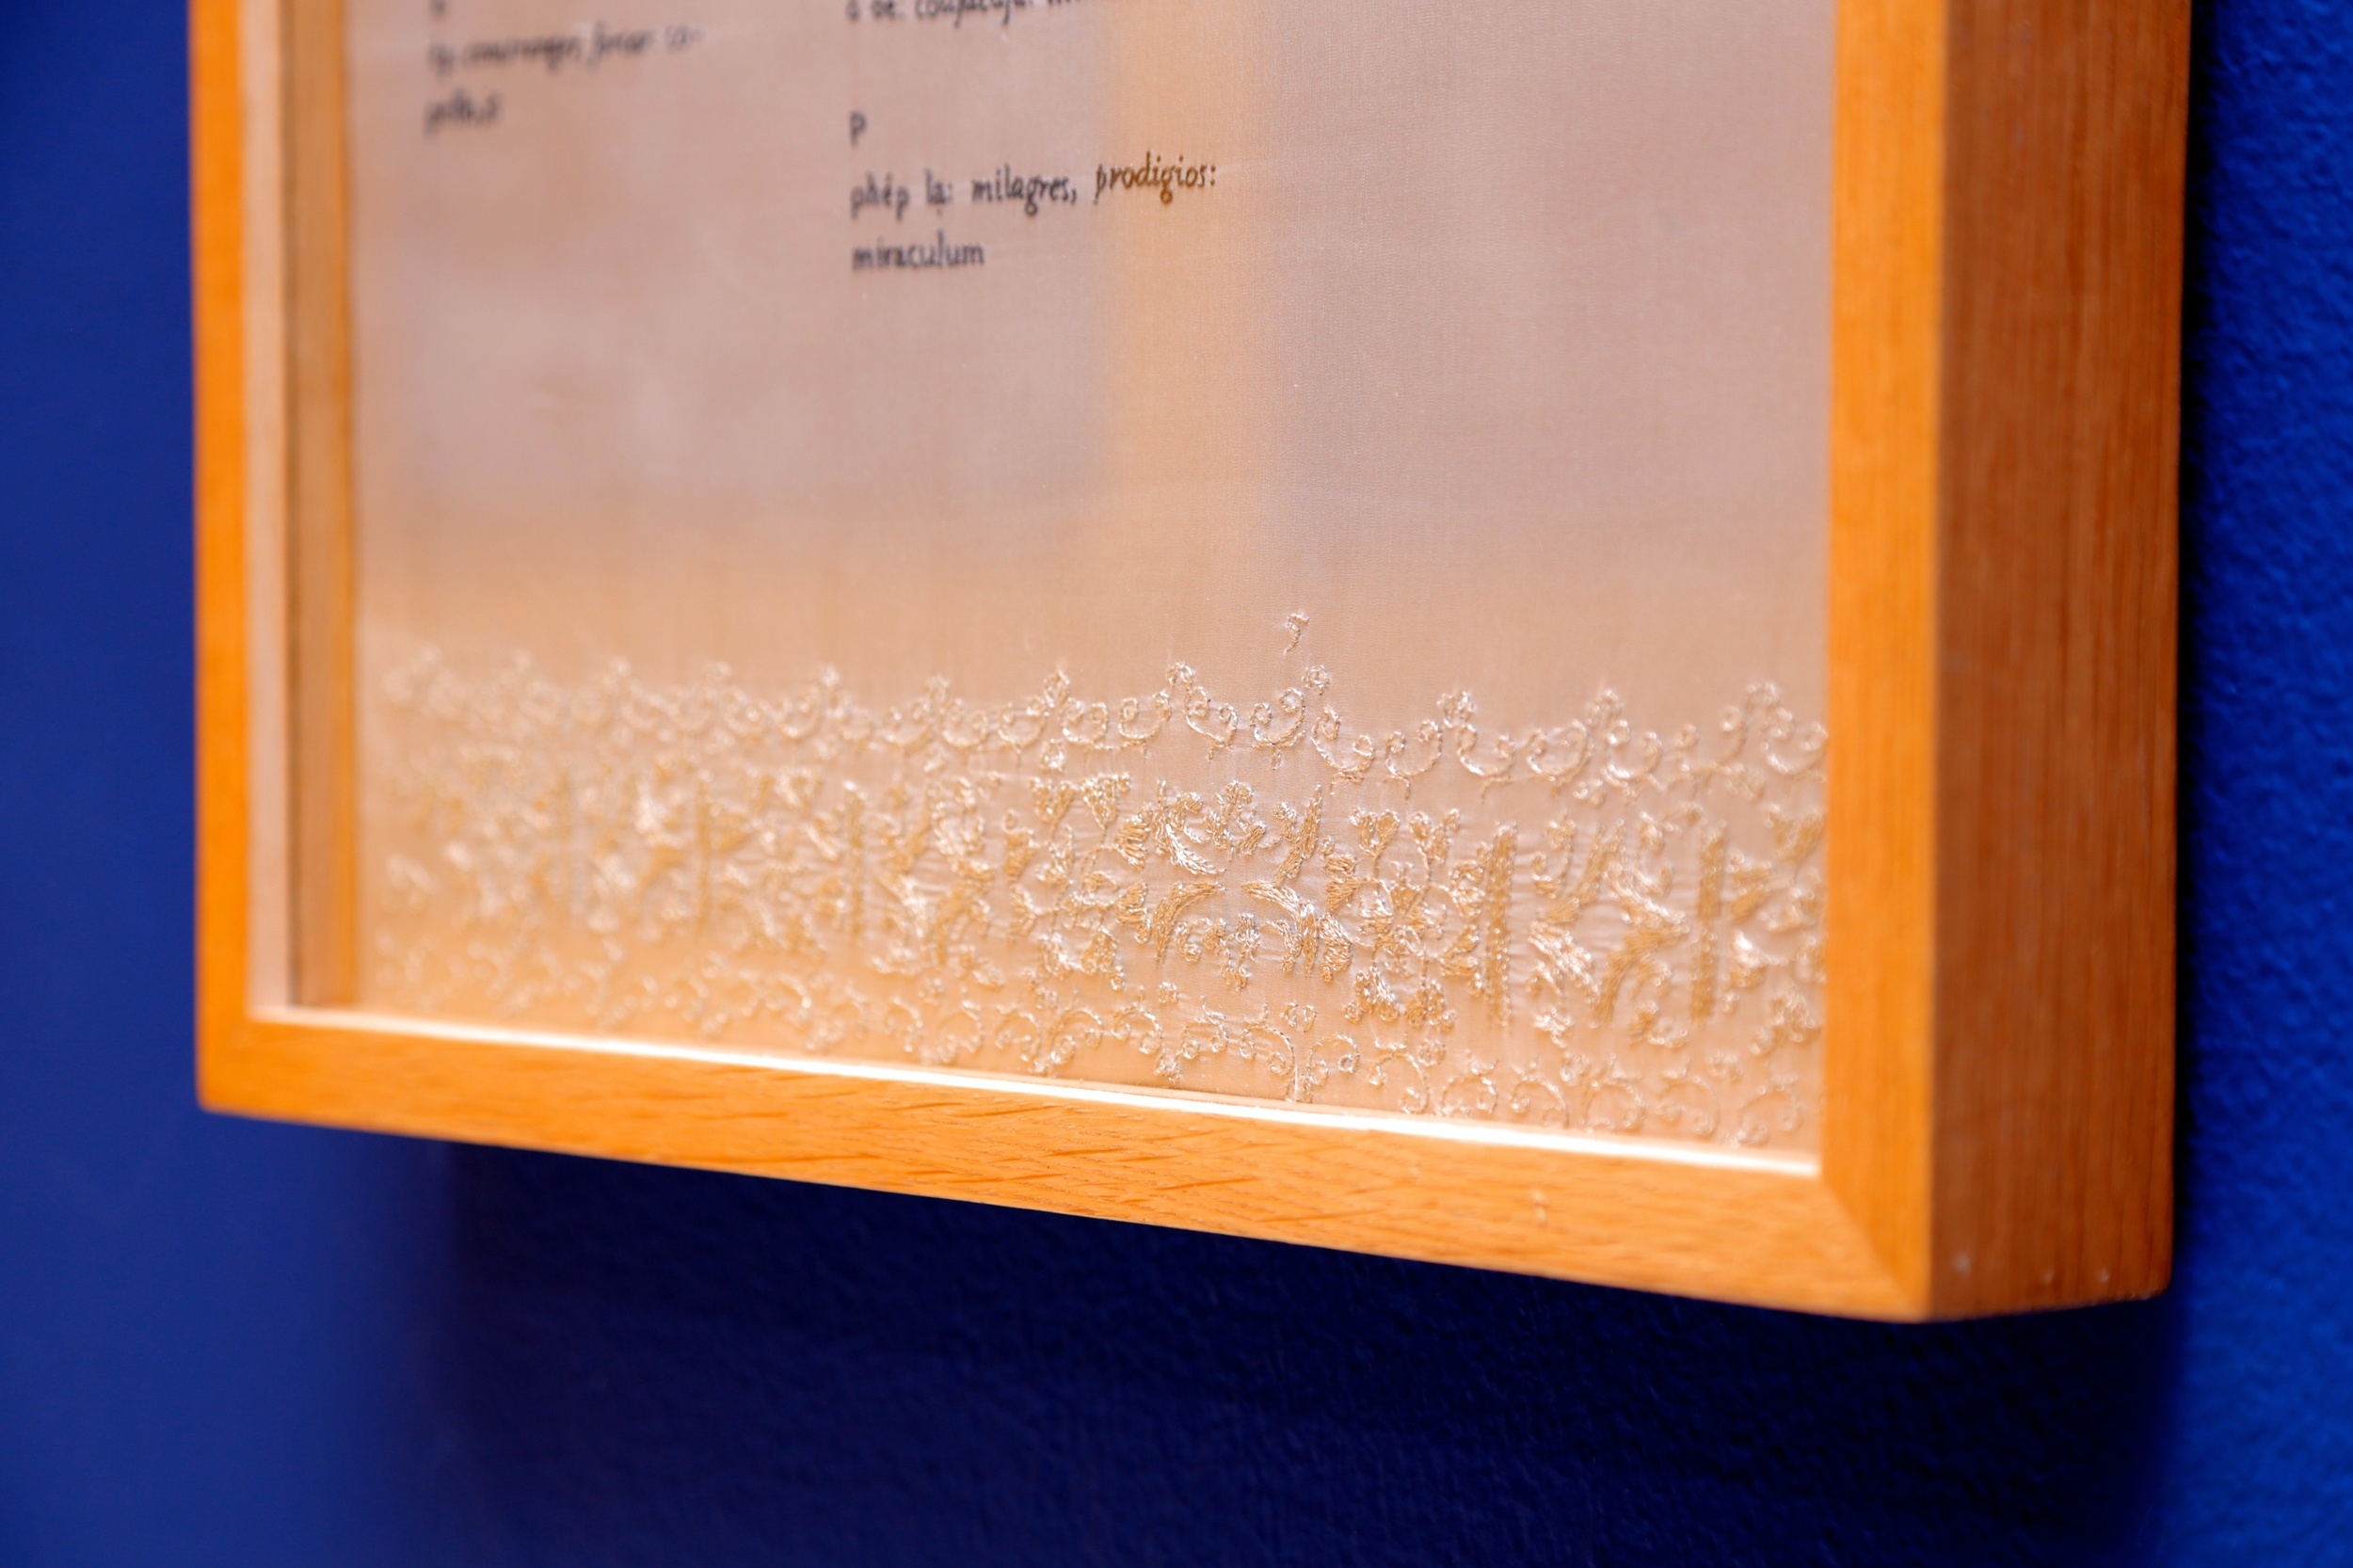 Thao-Nguyen Phan   'The Alphabet' (detail), 2014    Hand embroidery: silk, silk thread, wood    40 x 60cm, ed.3 + 1AP